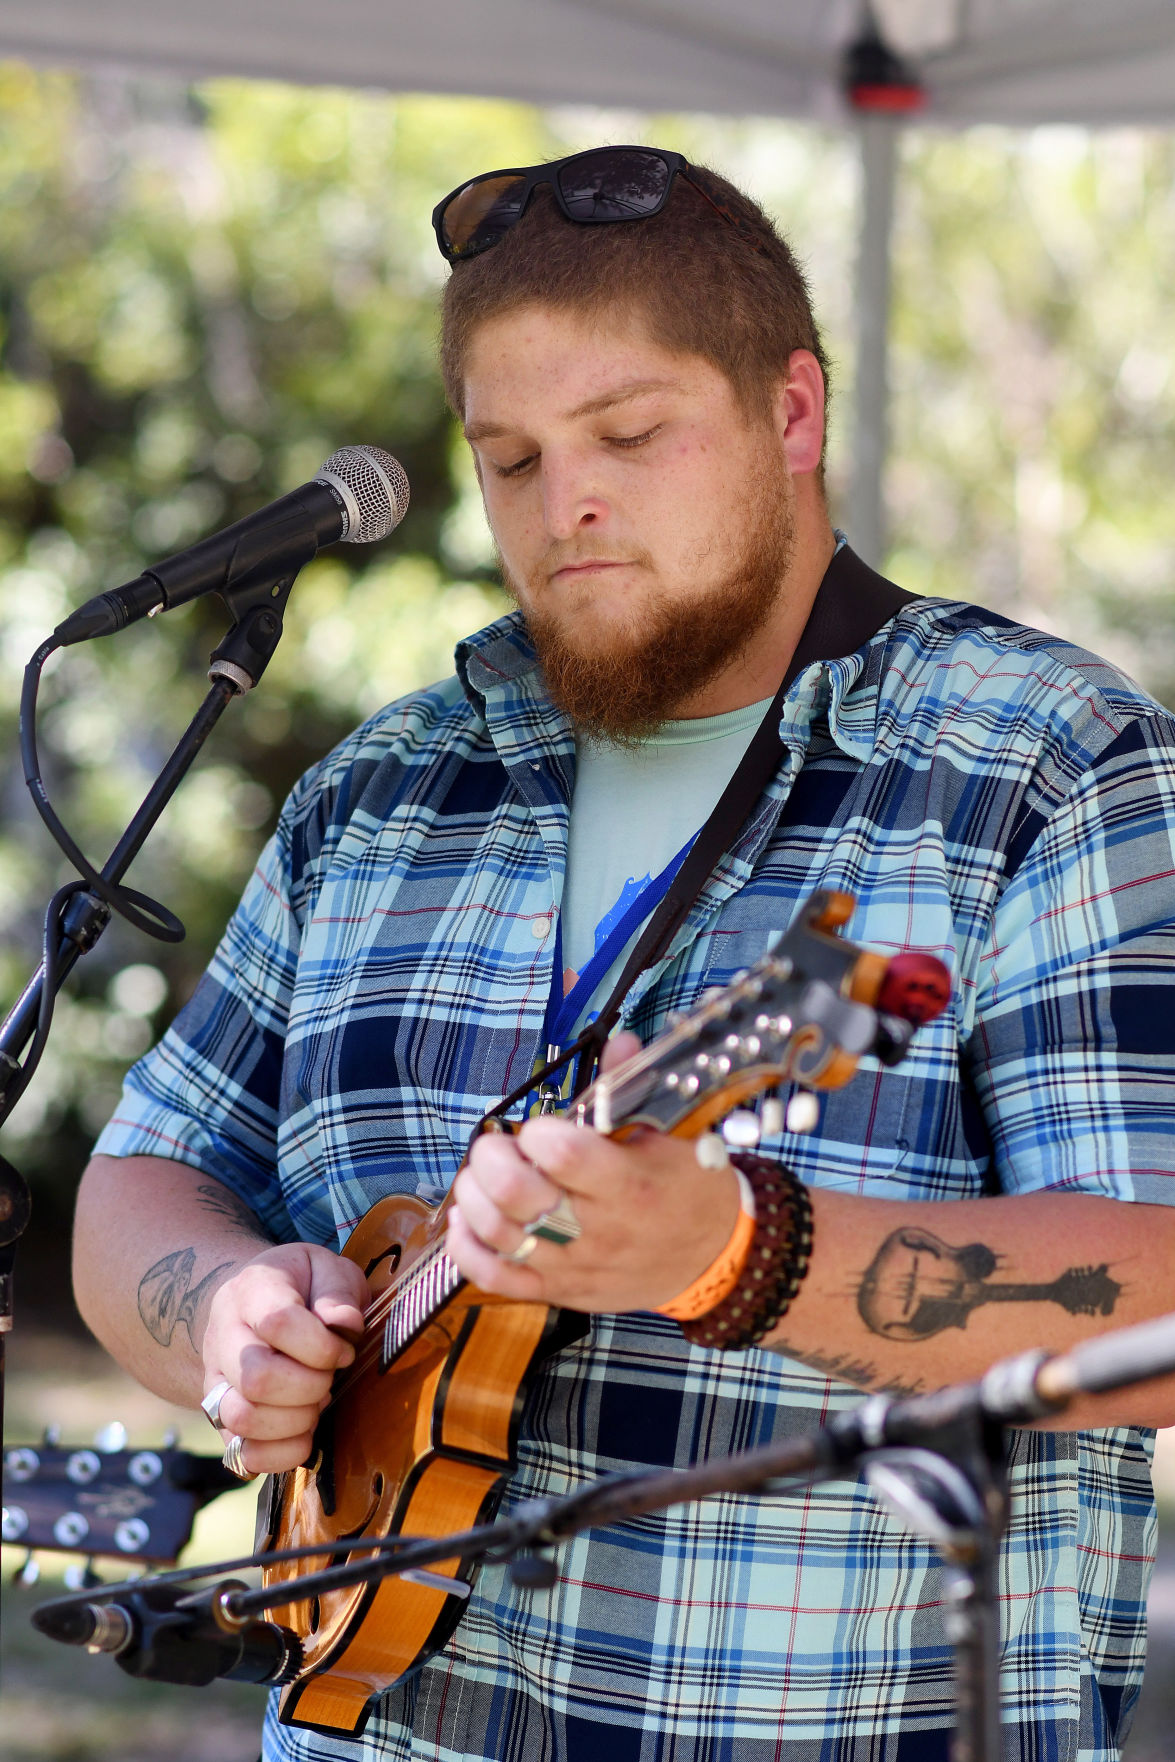 Daniell Vann performs at the Edisto Blackwater Boogie on Friday, October 11, 2019 at Givhans Ferry State Park. By Joy Bonala